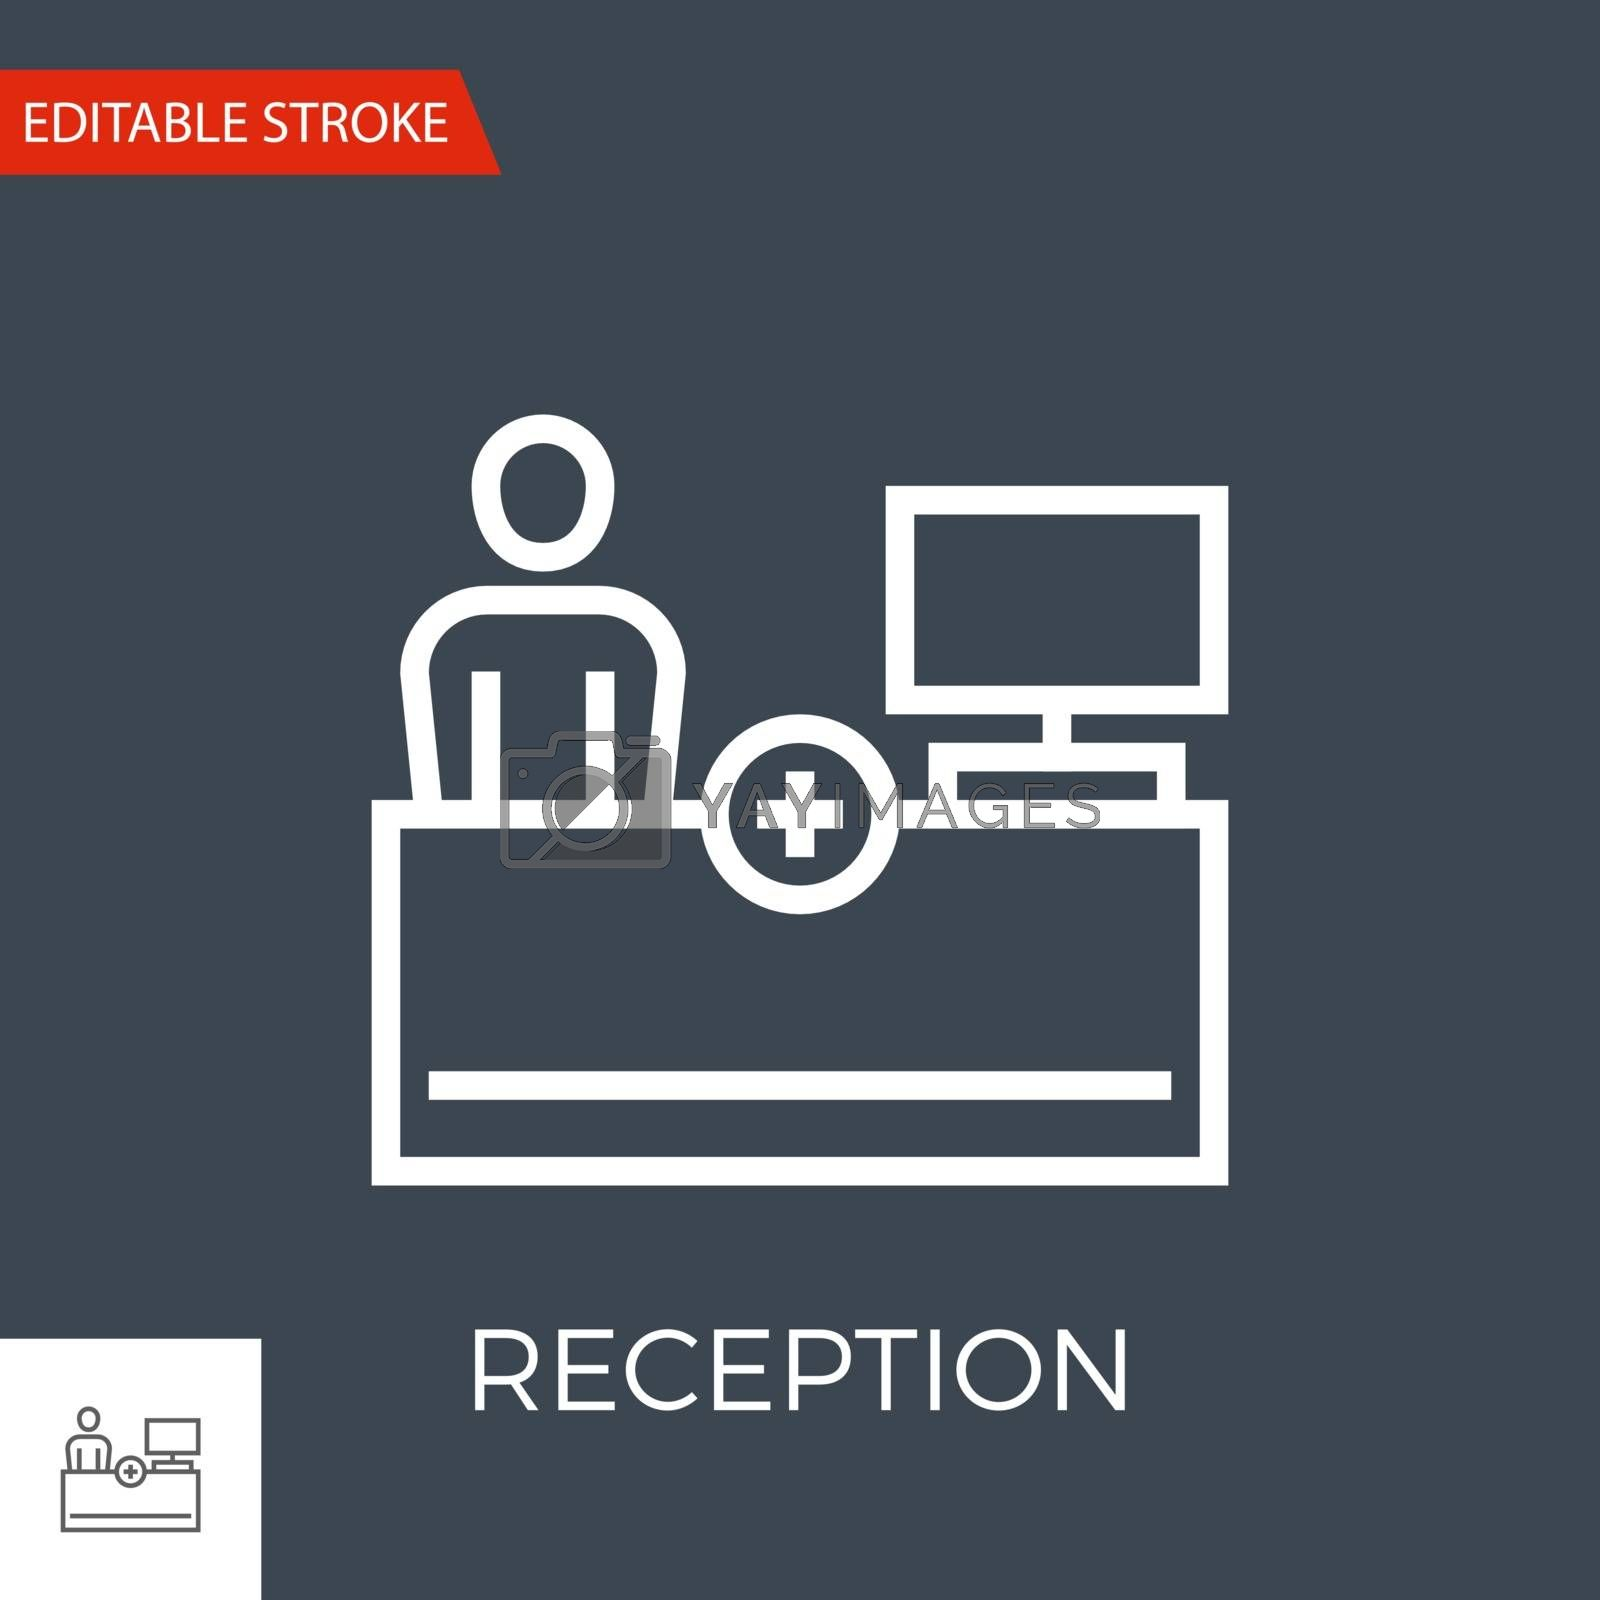 Reception Thin Line Vector Icon. Flat Icon Isolated on the Black Background. Editable Stroke EPS file. Vector illustration.